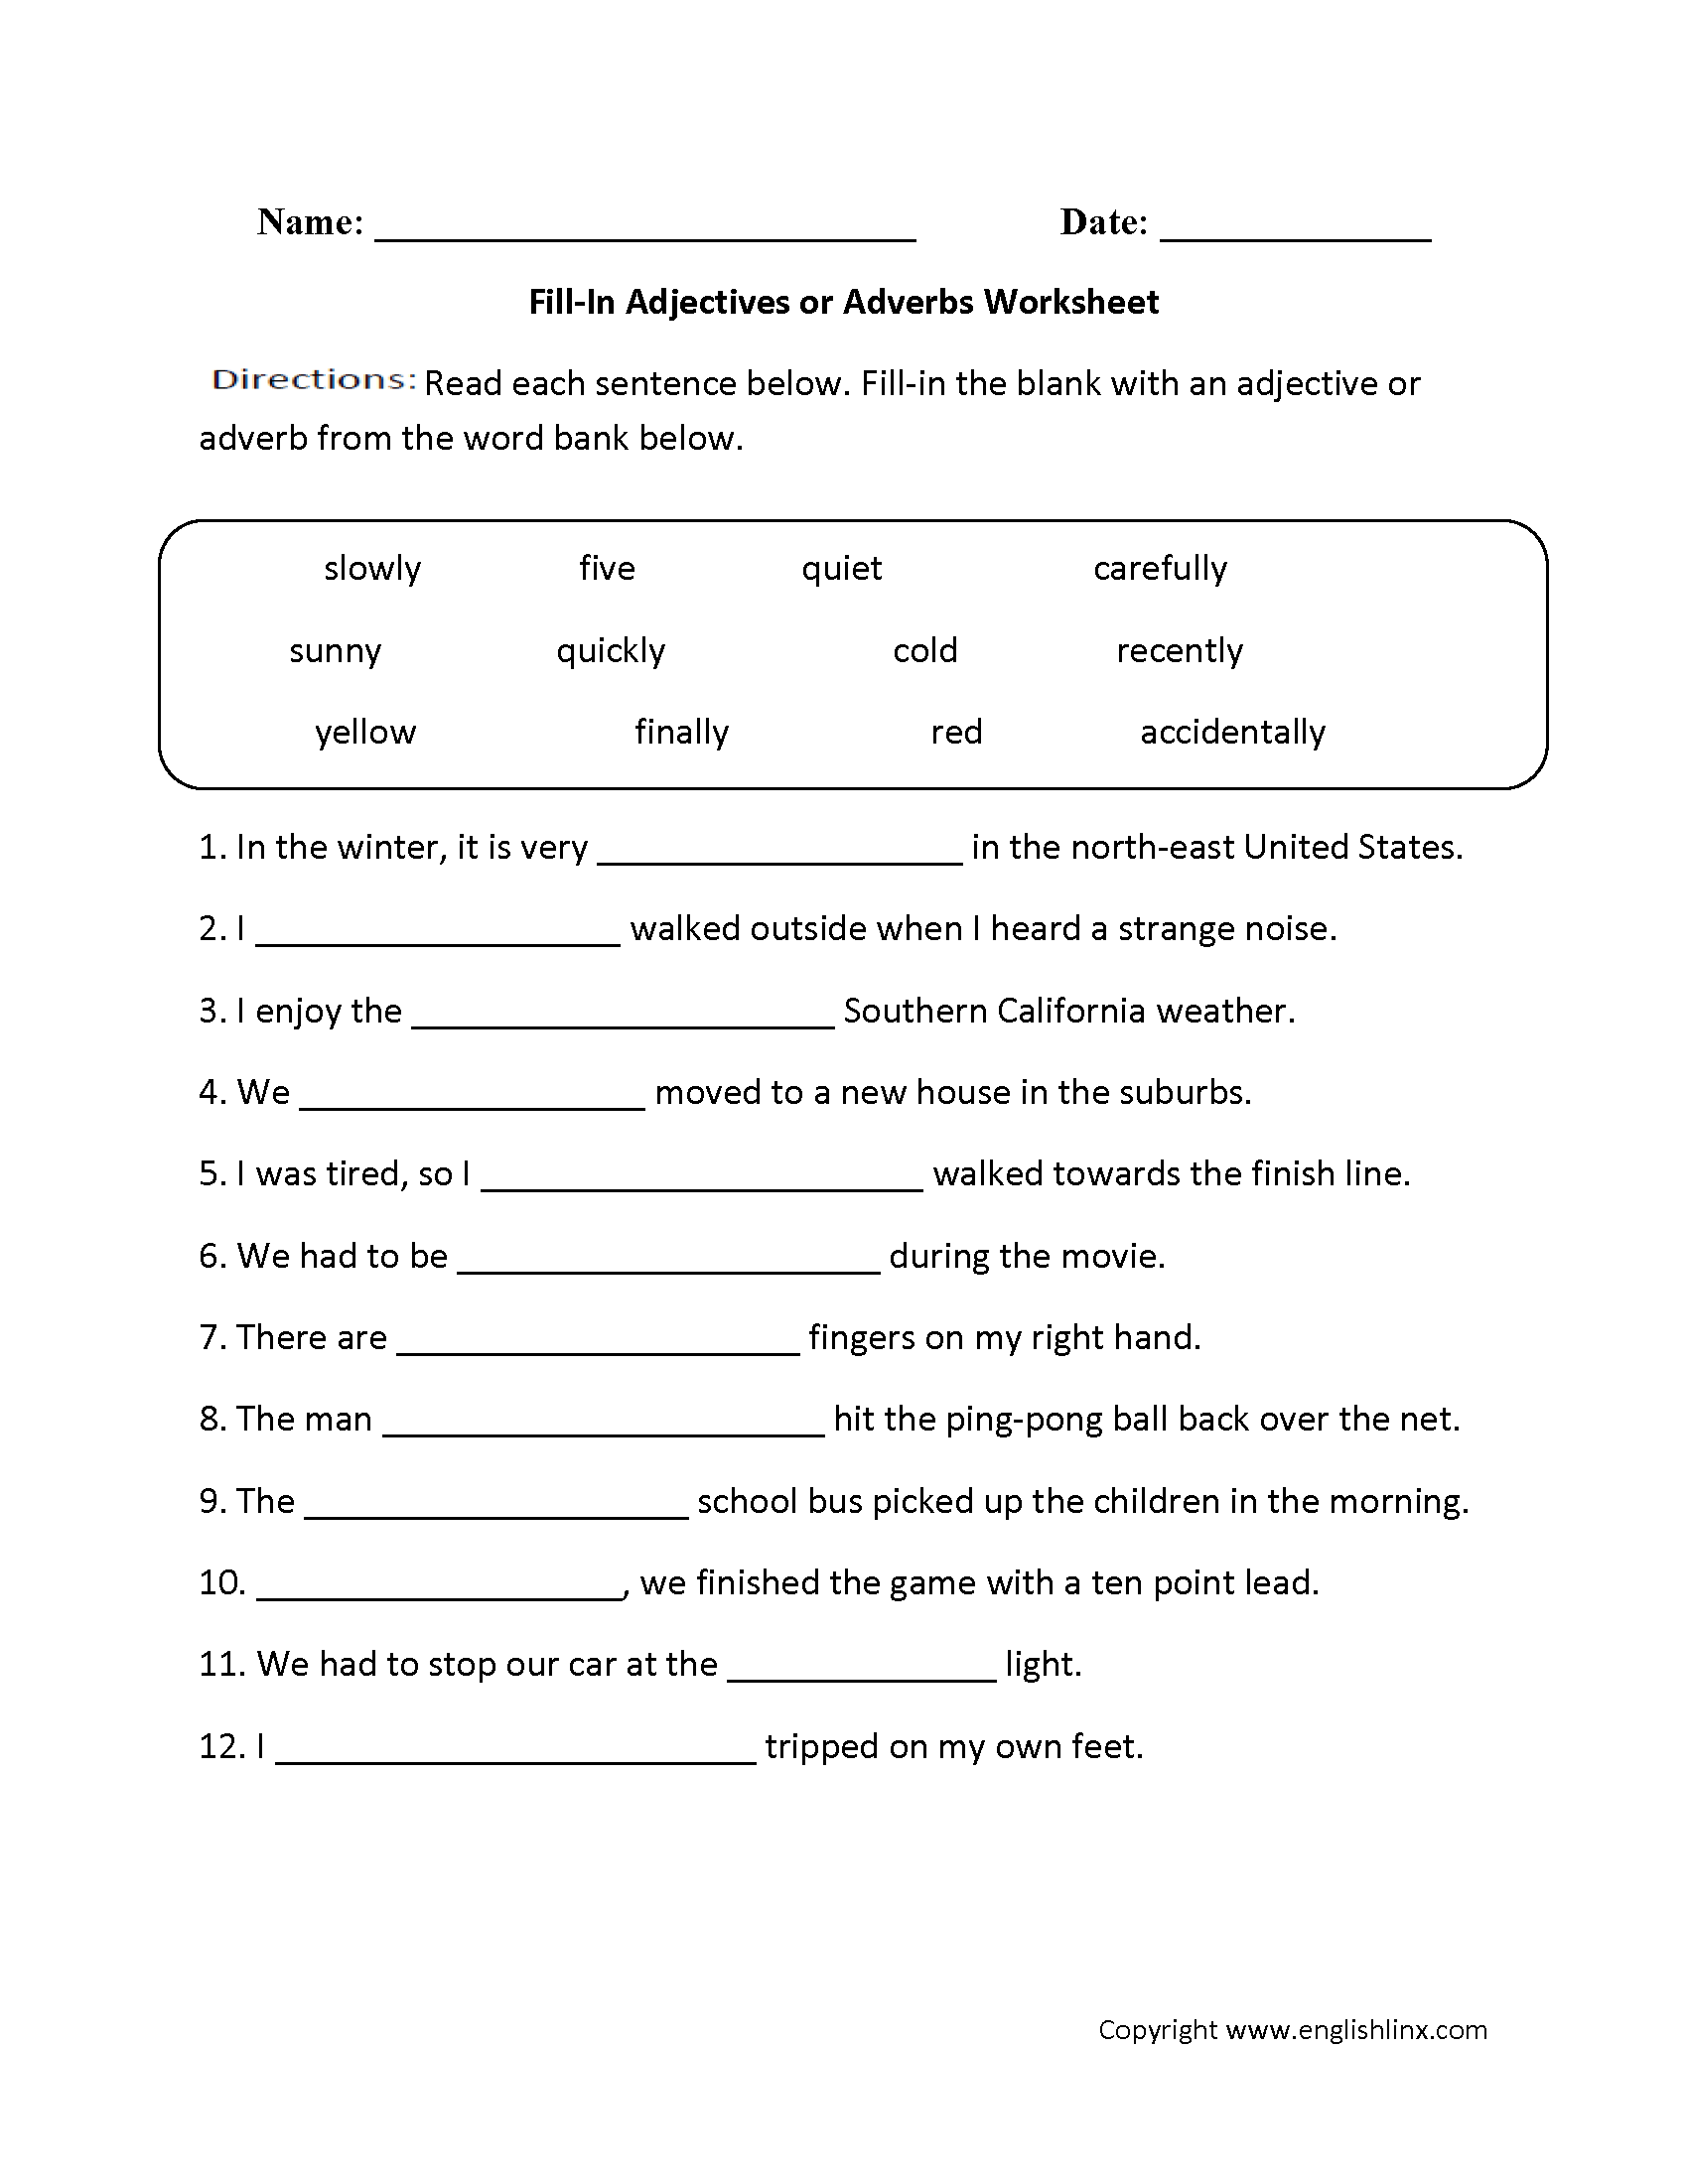 ... or Adverbs Worksheets | Fill-In Adjectives or Adverbs Worksheet